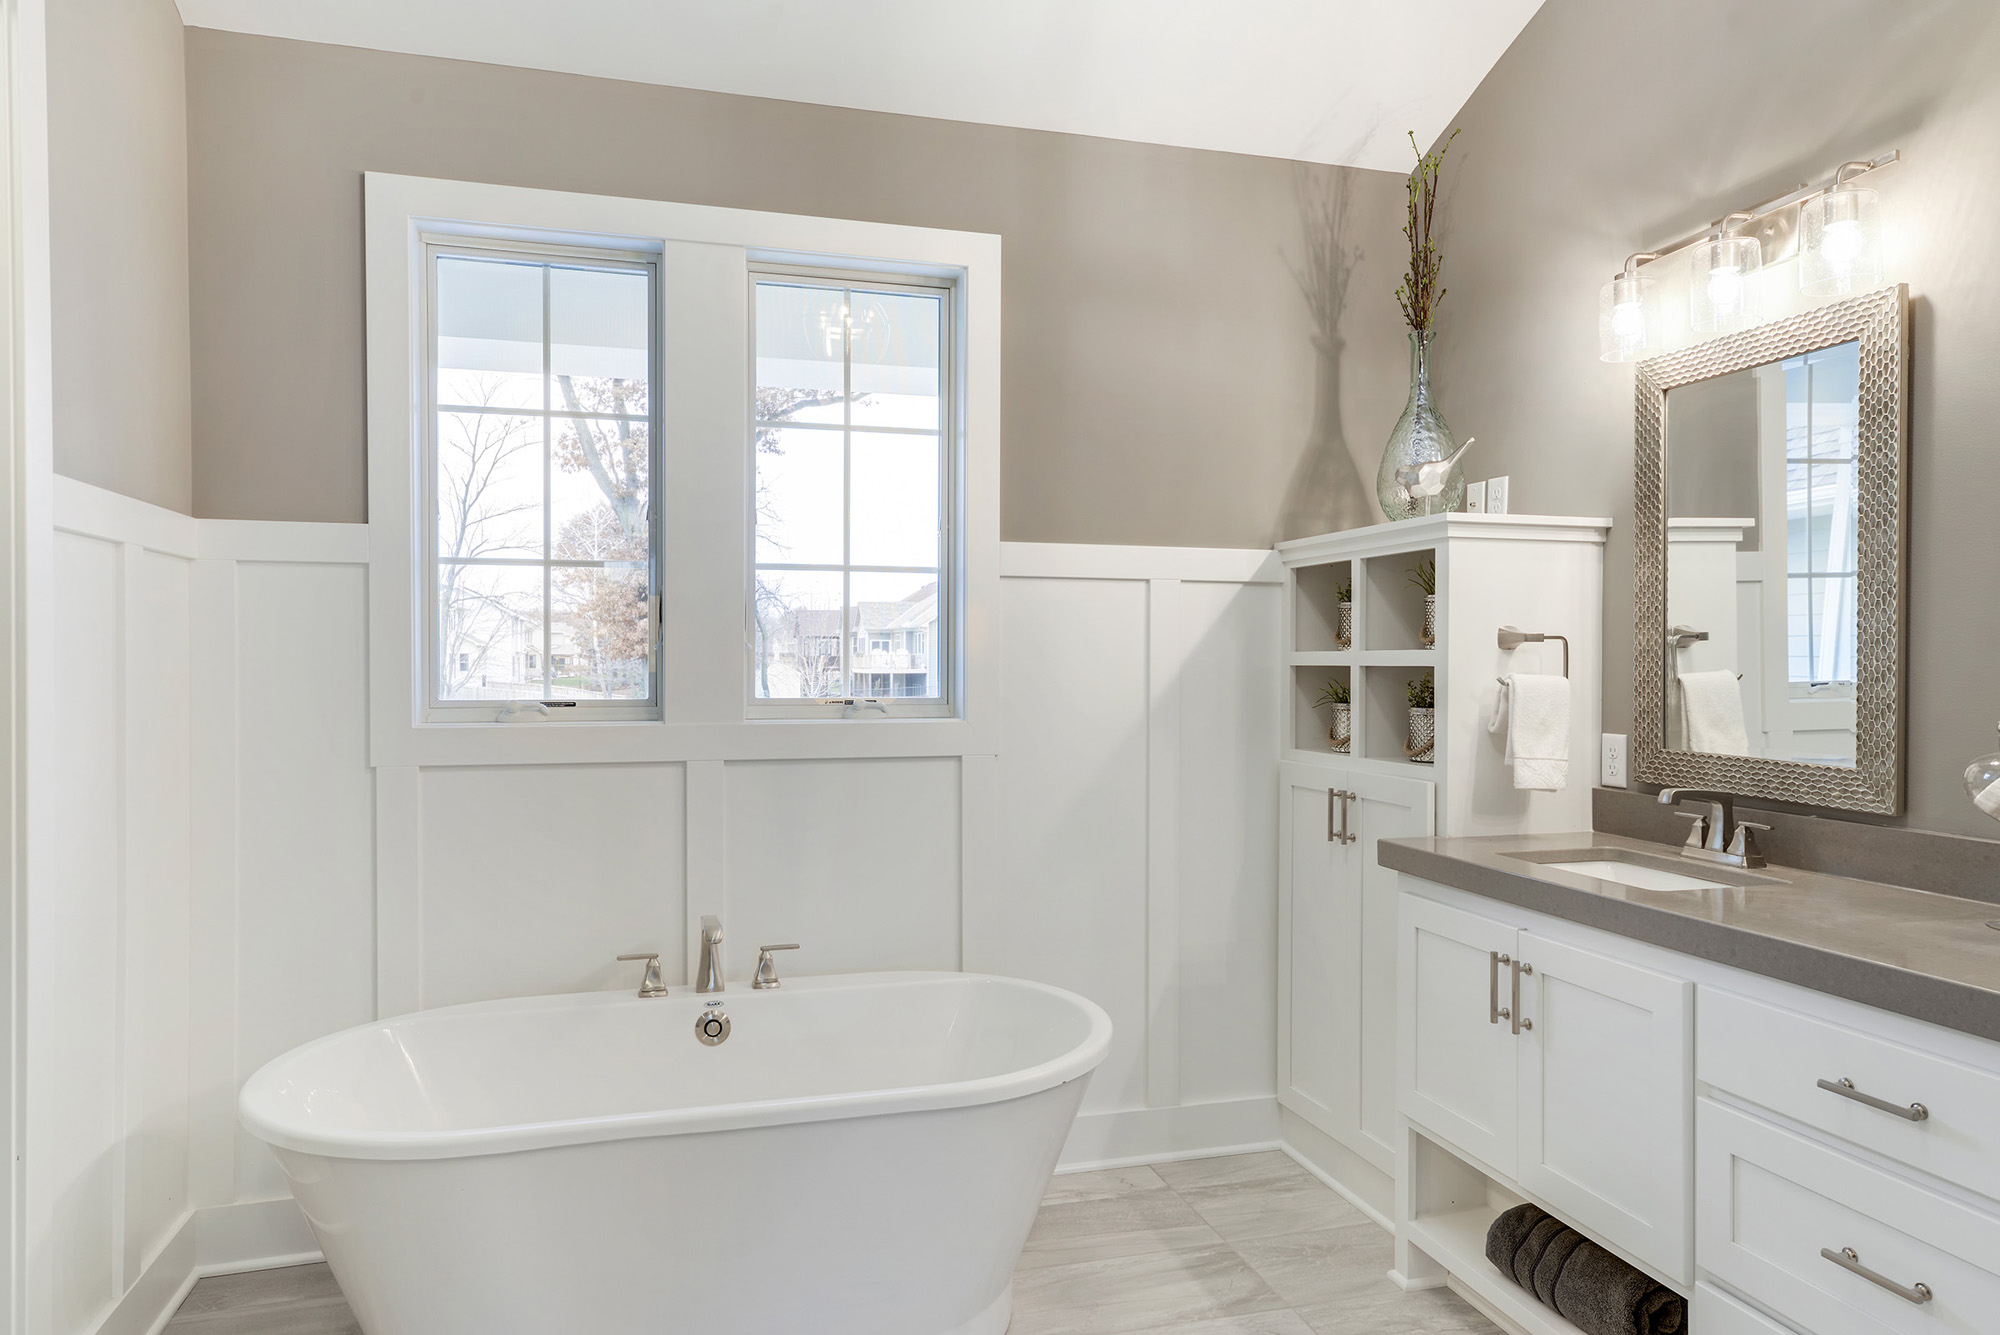 The master bath has a large tub